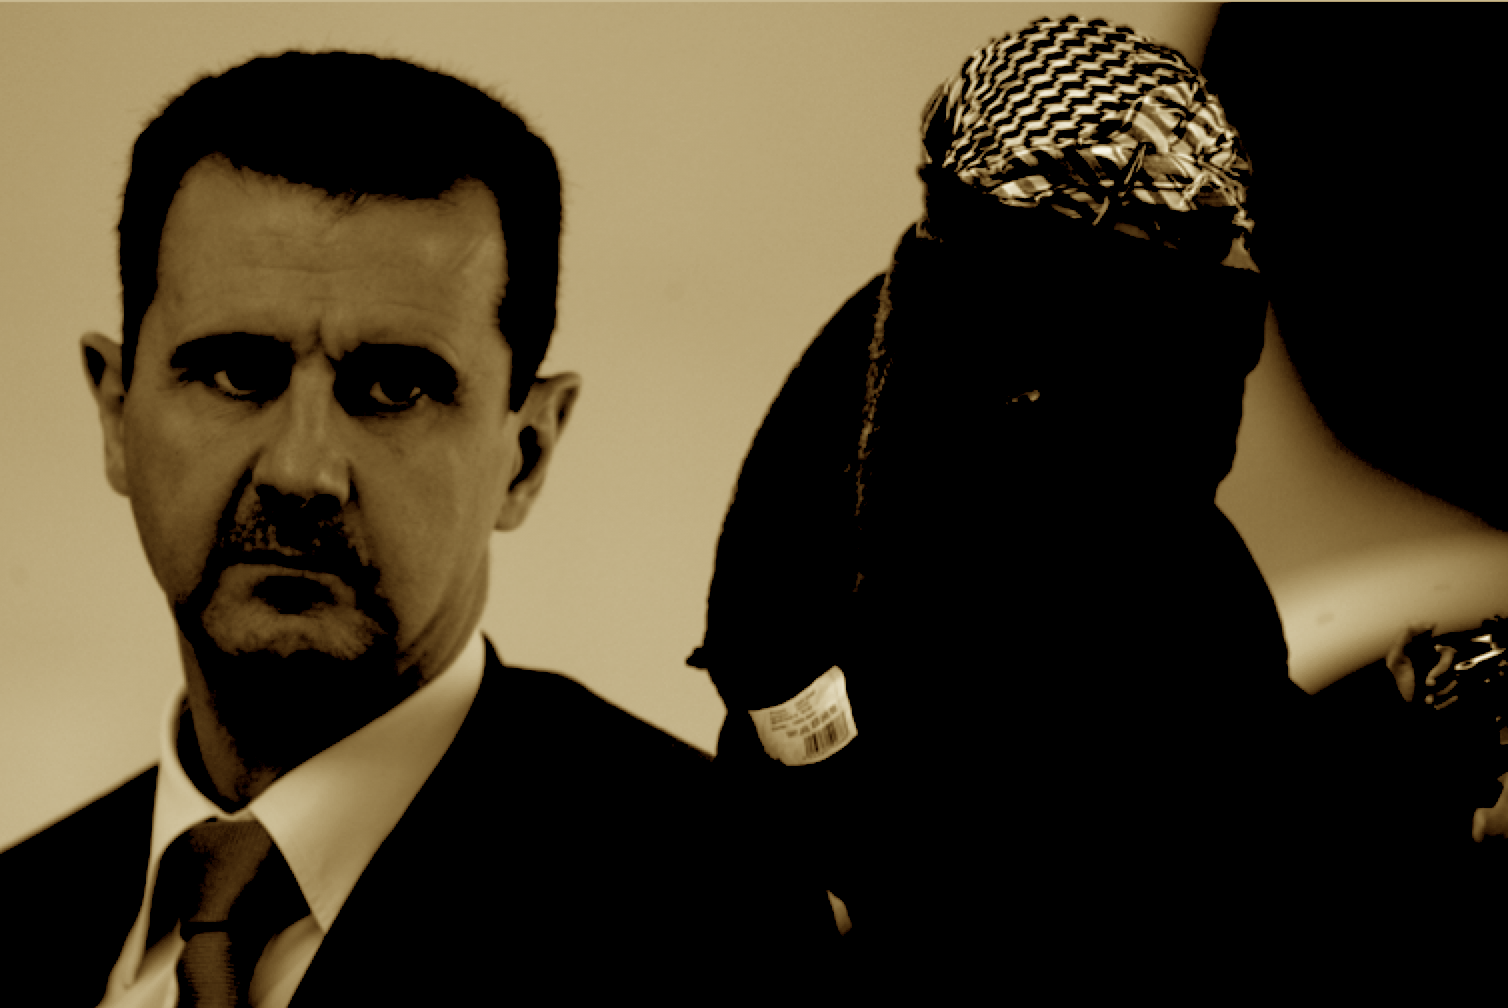 Assad and the rise of ISIS, Assad and the rise of ISIS